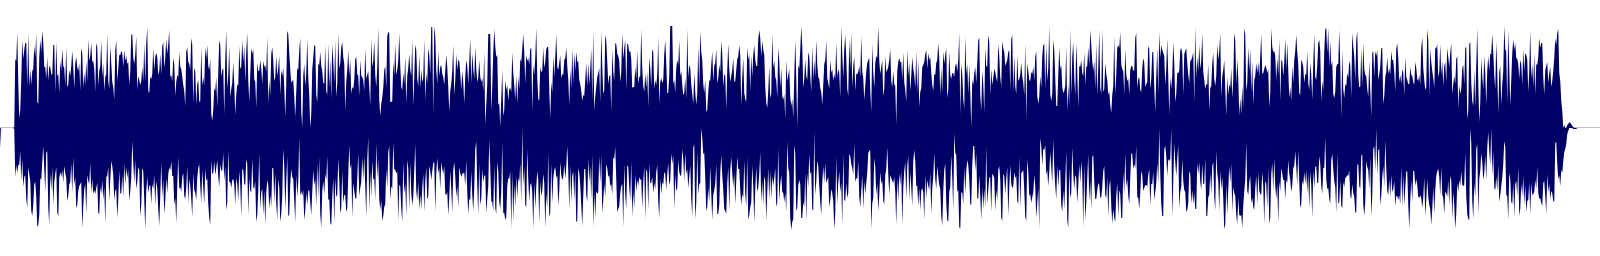 waveform of track #134557